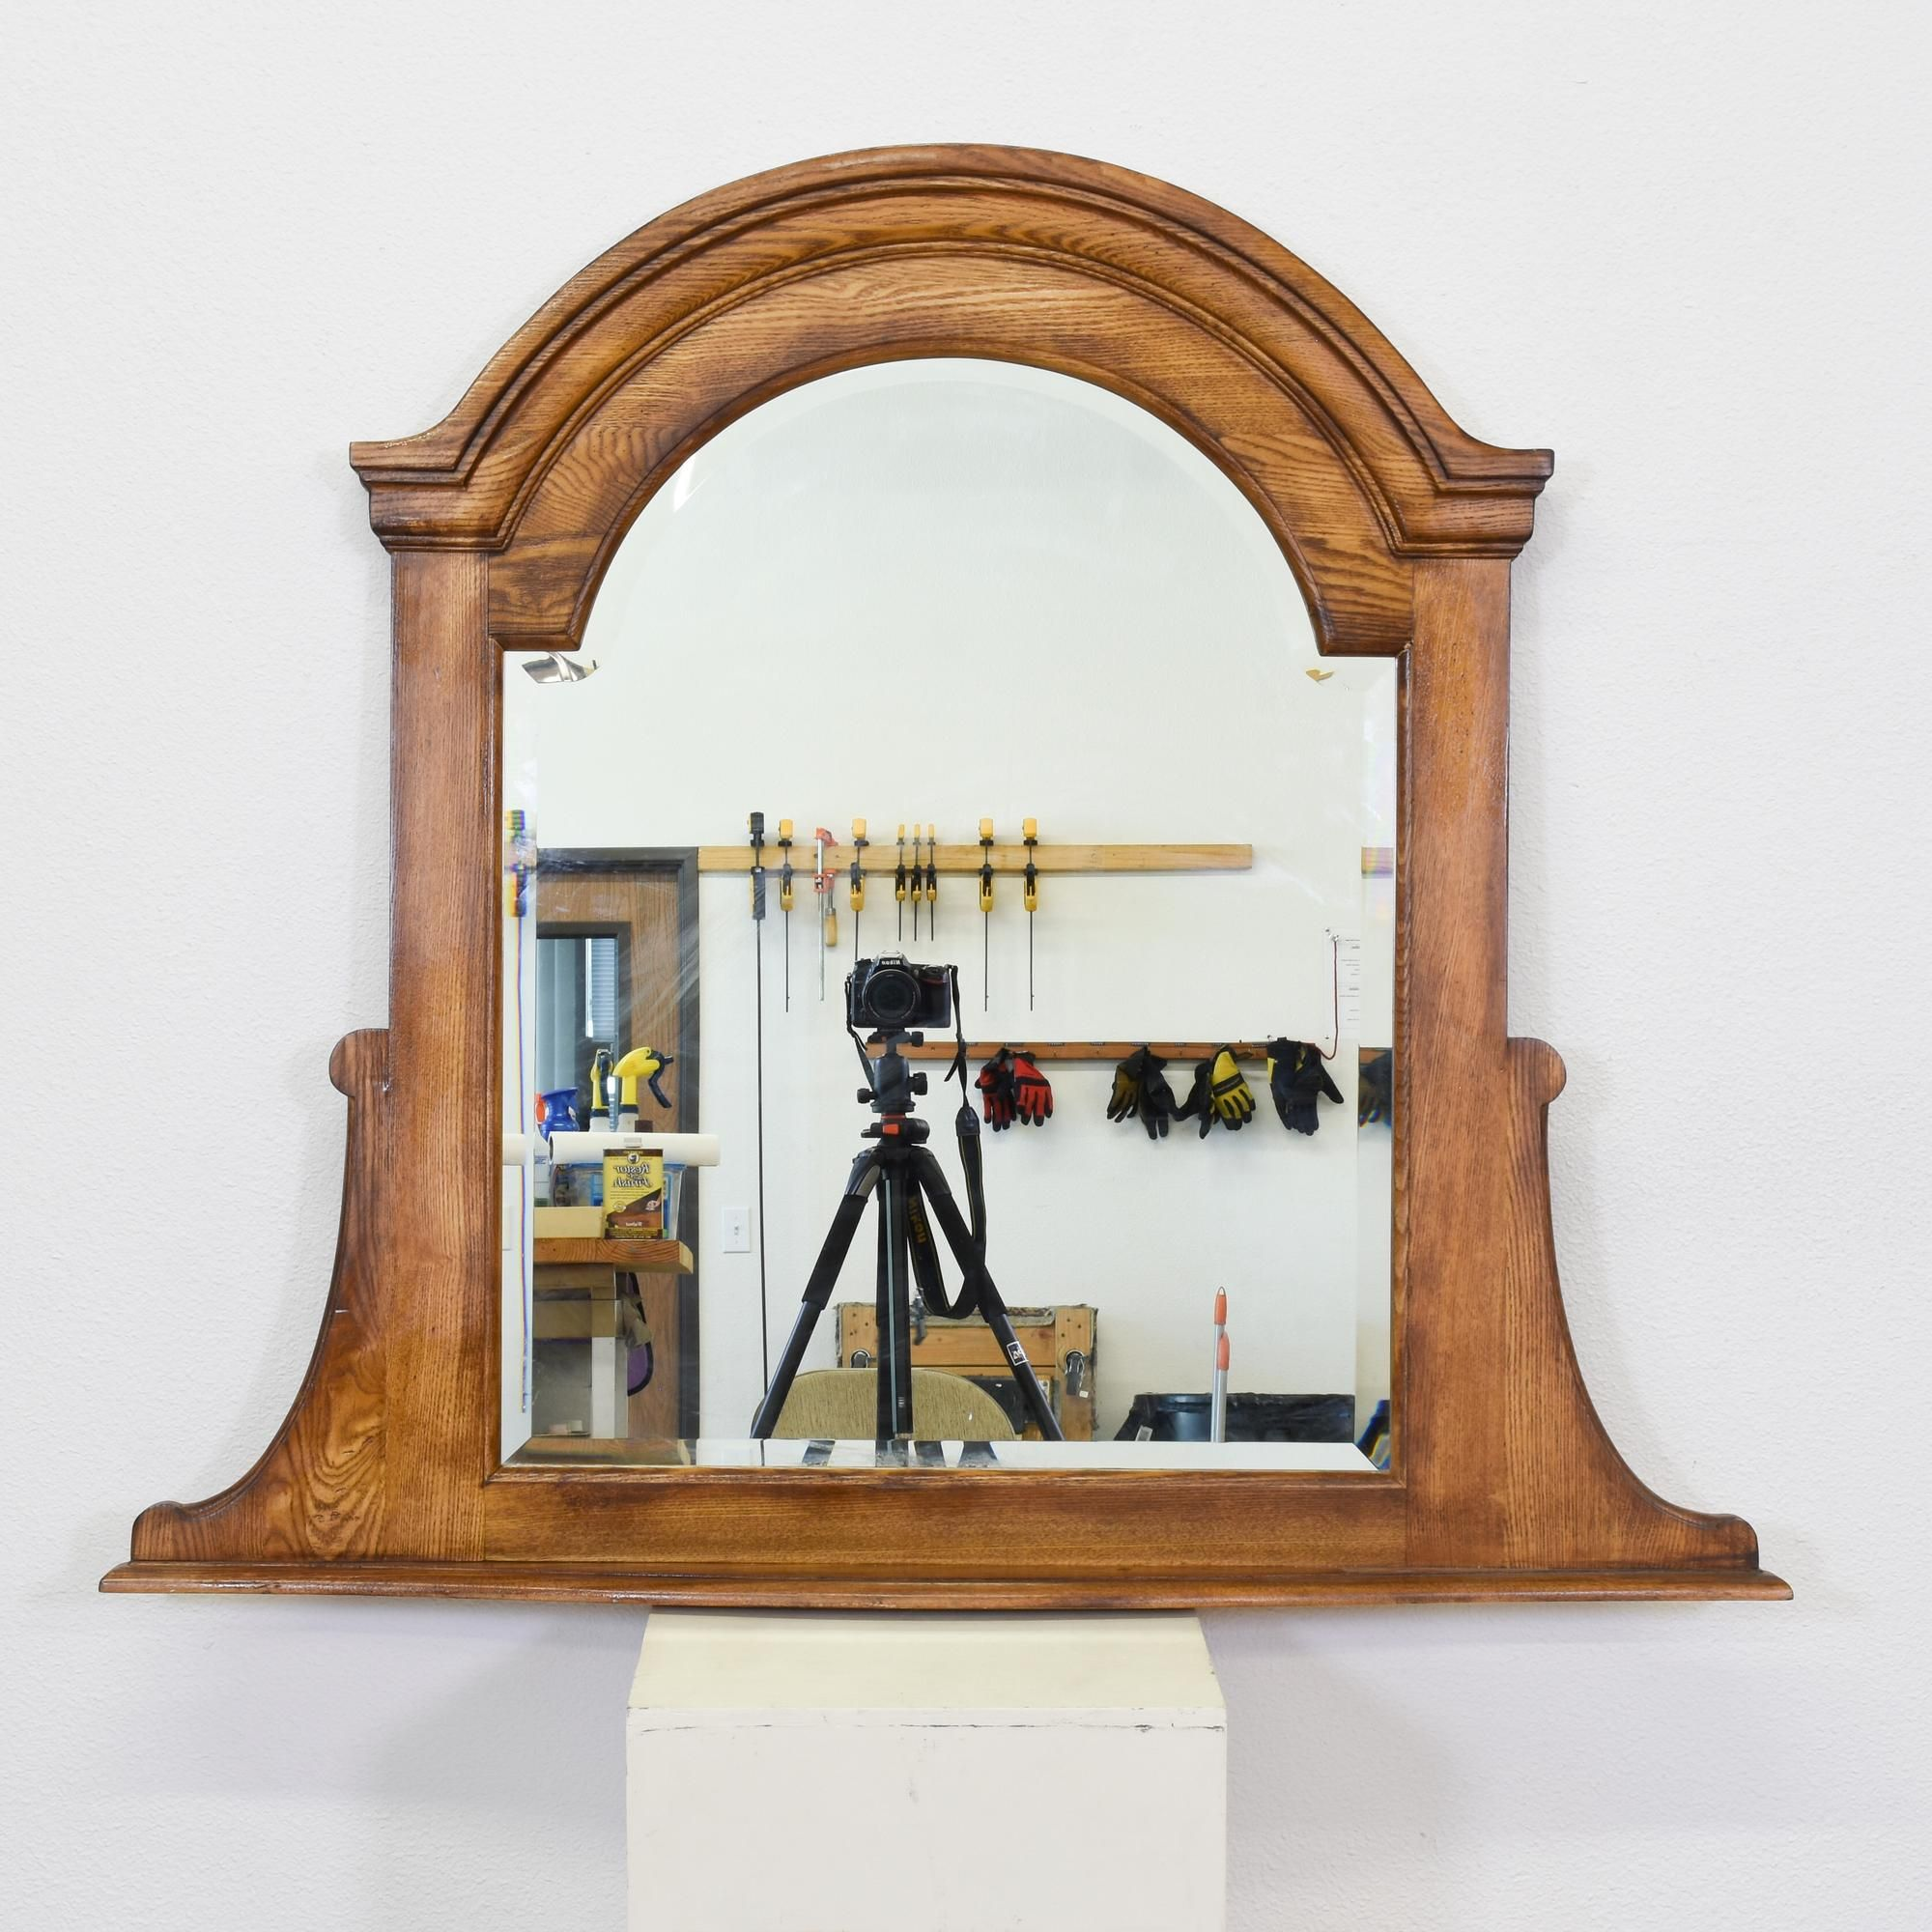 This mantel mirror is featured in a solid wood with a glossy oak